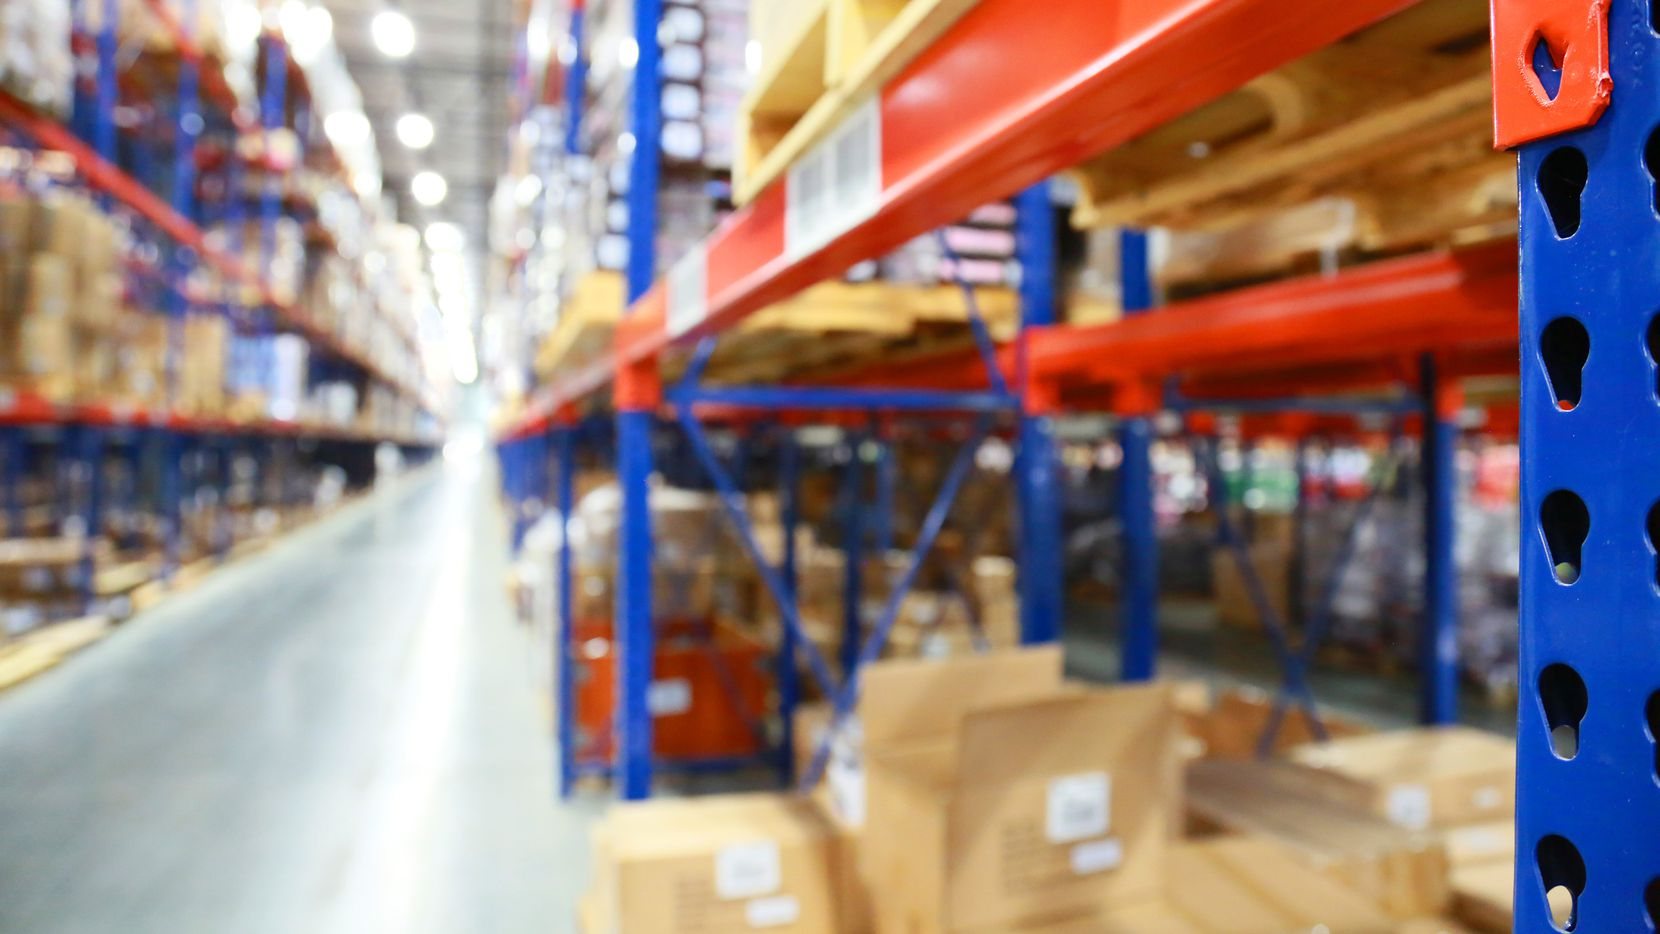 Smart Warehousing has 30 locations in 10 states.